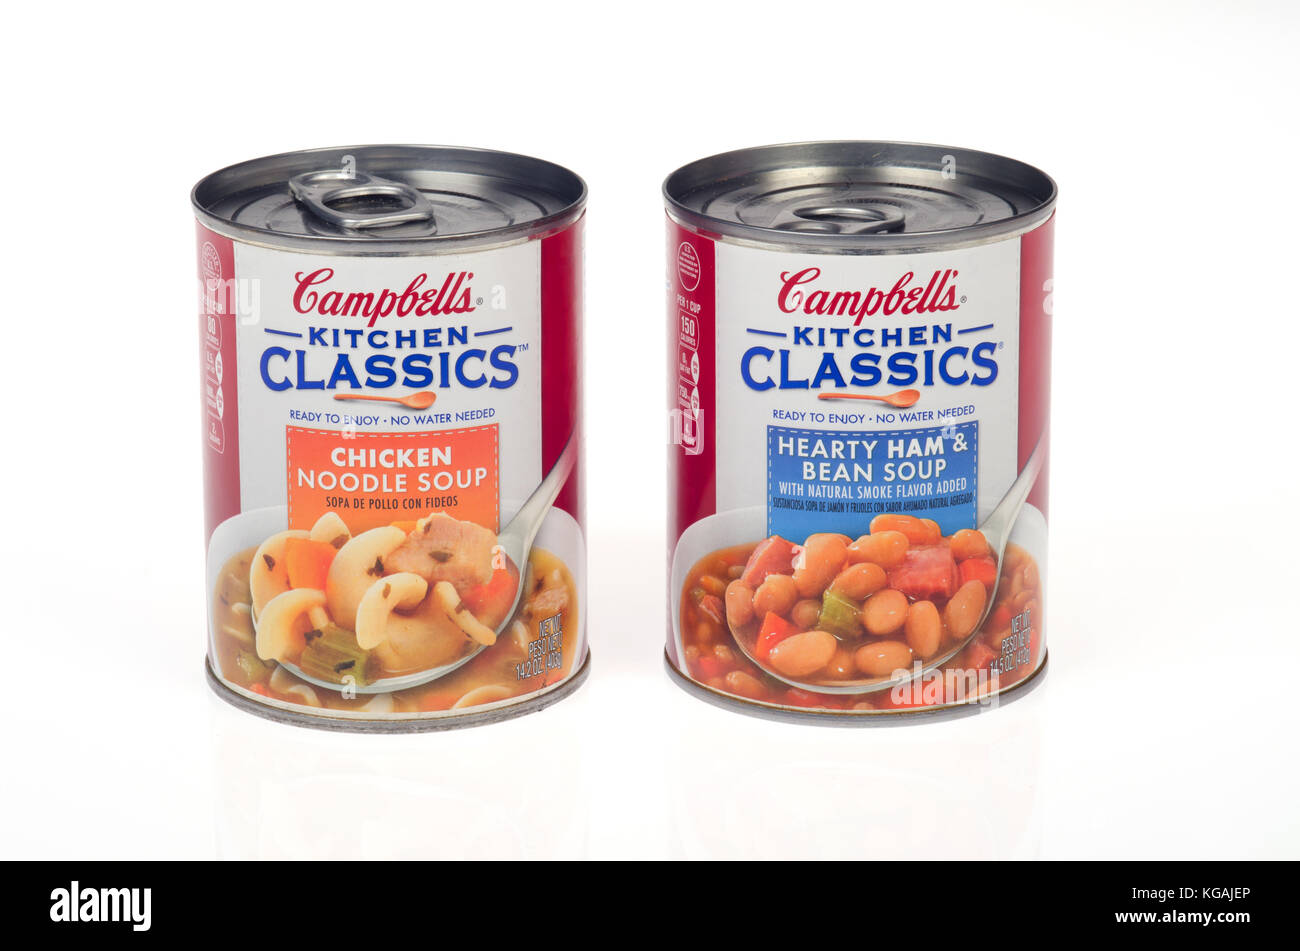 2 Cans Of Campbellu0027s Kitchen Classics Soup, 1 Chicken Noodle And 1 Hearty  Ham And Bean